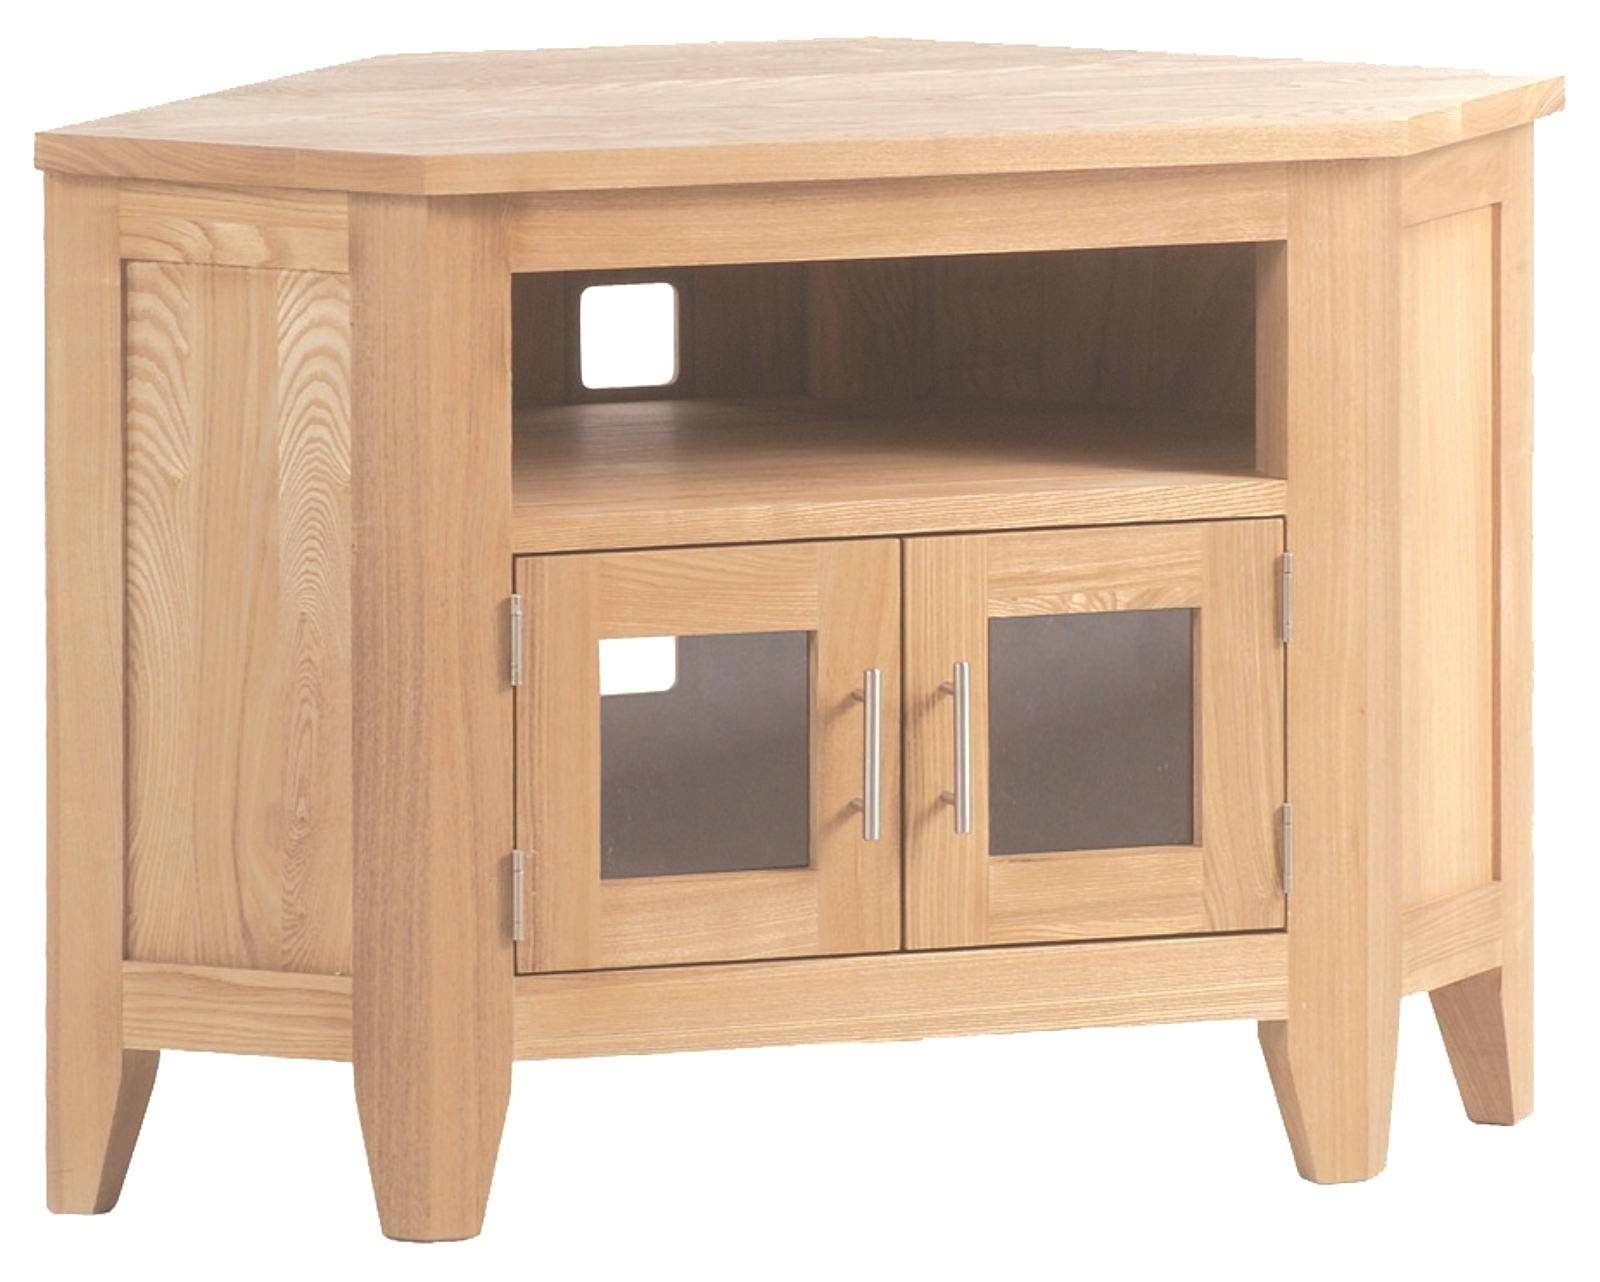 Tv Stand : 149 Small Tv Stand Wooden Moes Home Collection Lx 1023 Regarding Silver Corner Tv Stands (View 7 of 15)